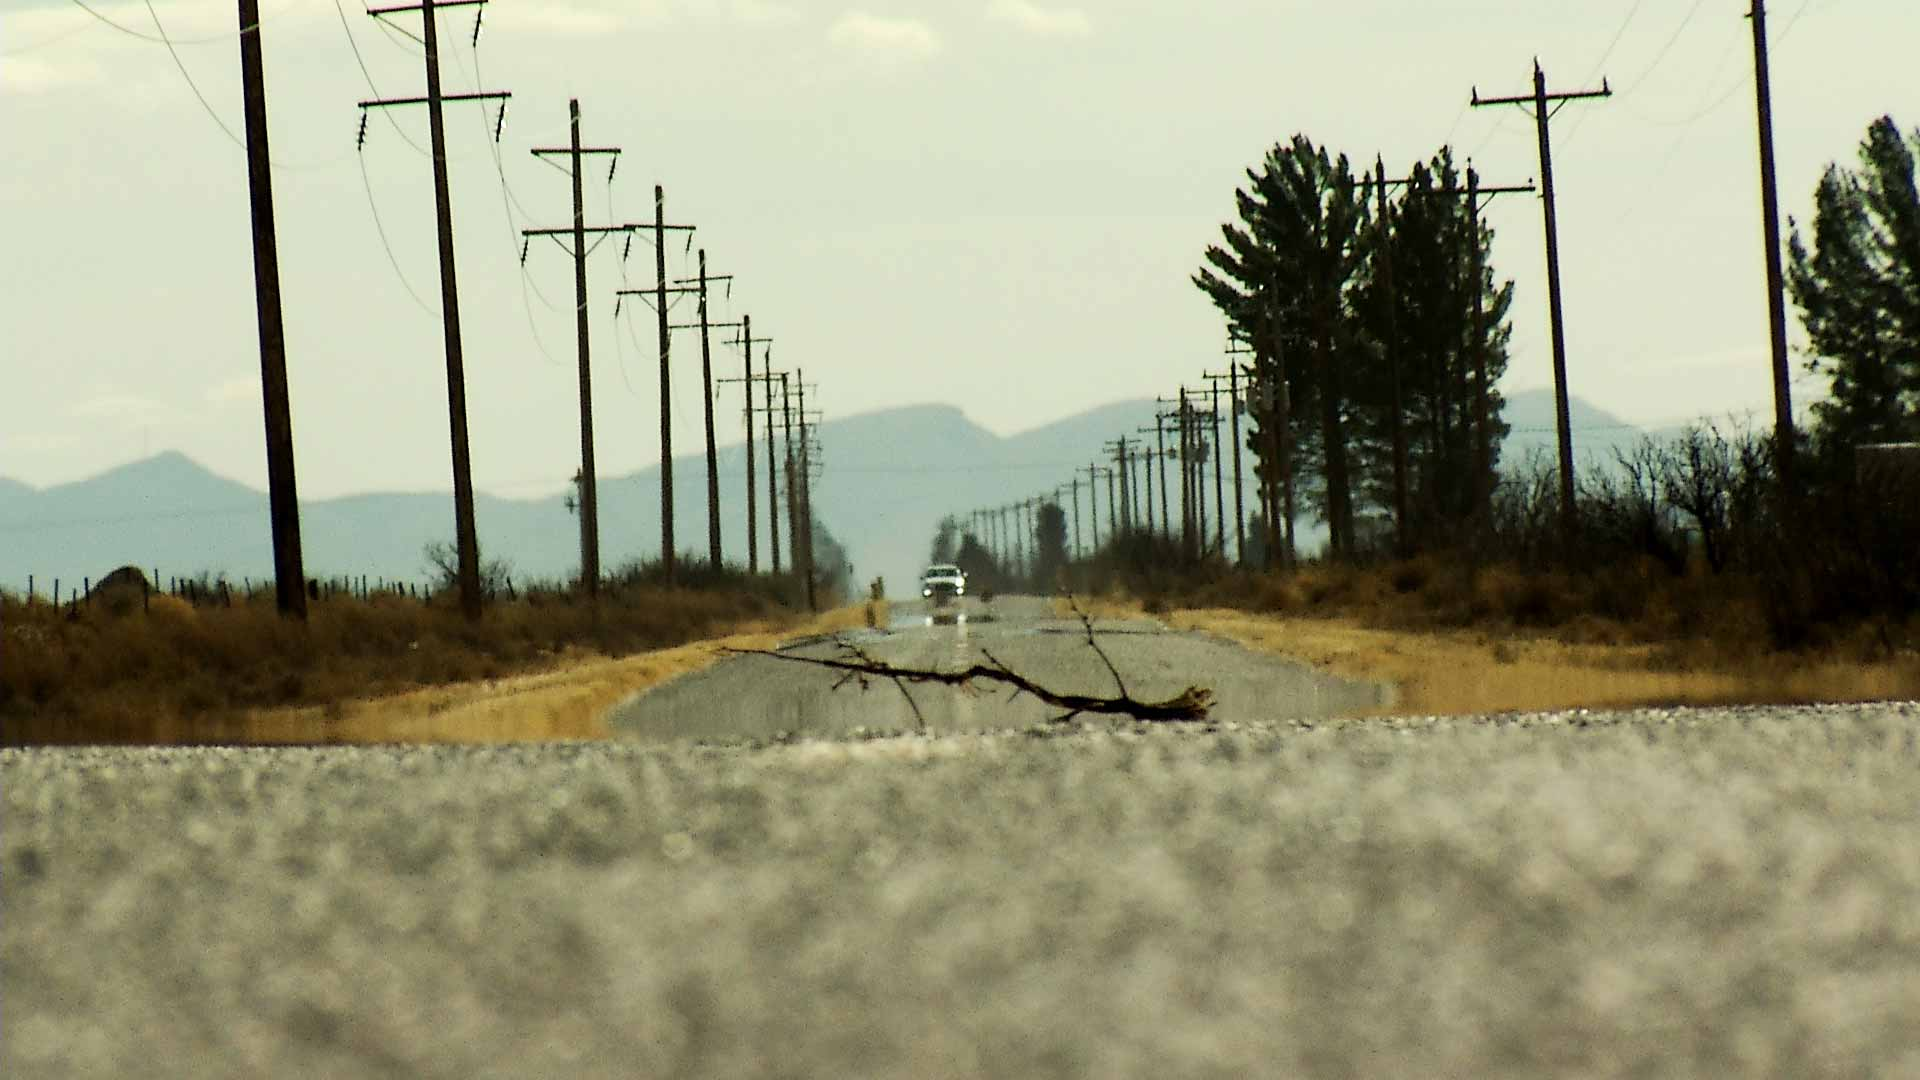 A branch is positioned in the middle of a rural road in southern Arizona.